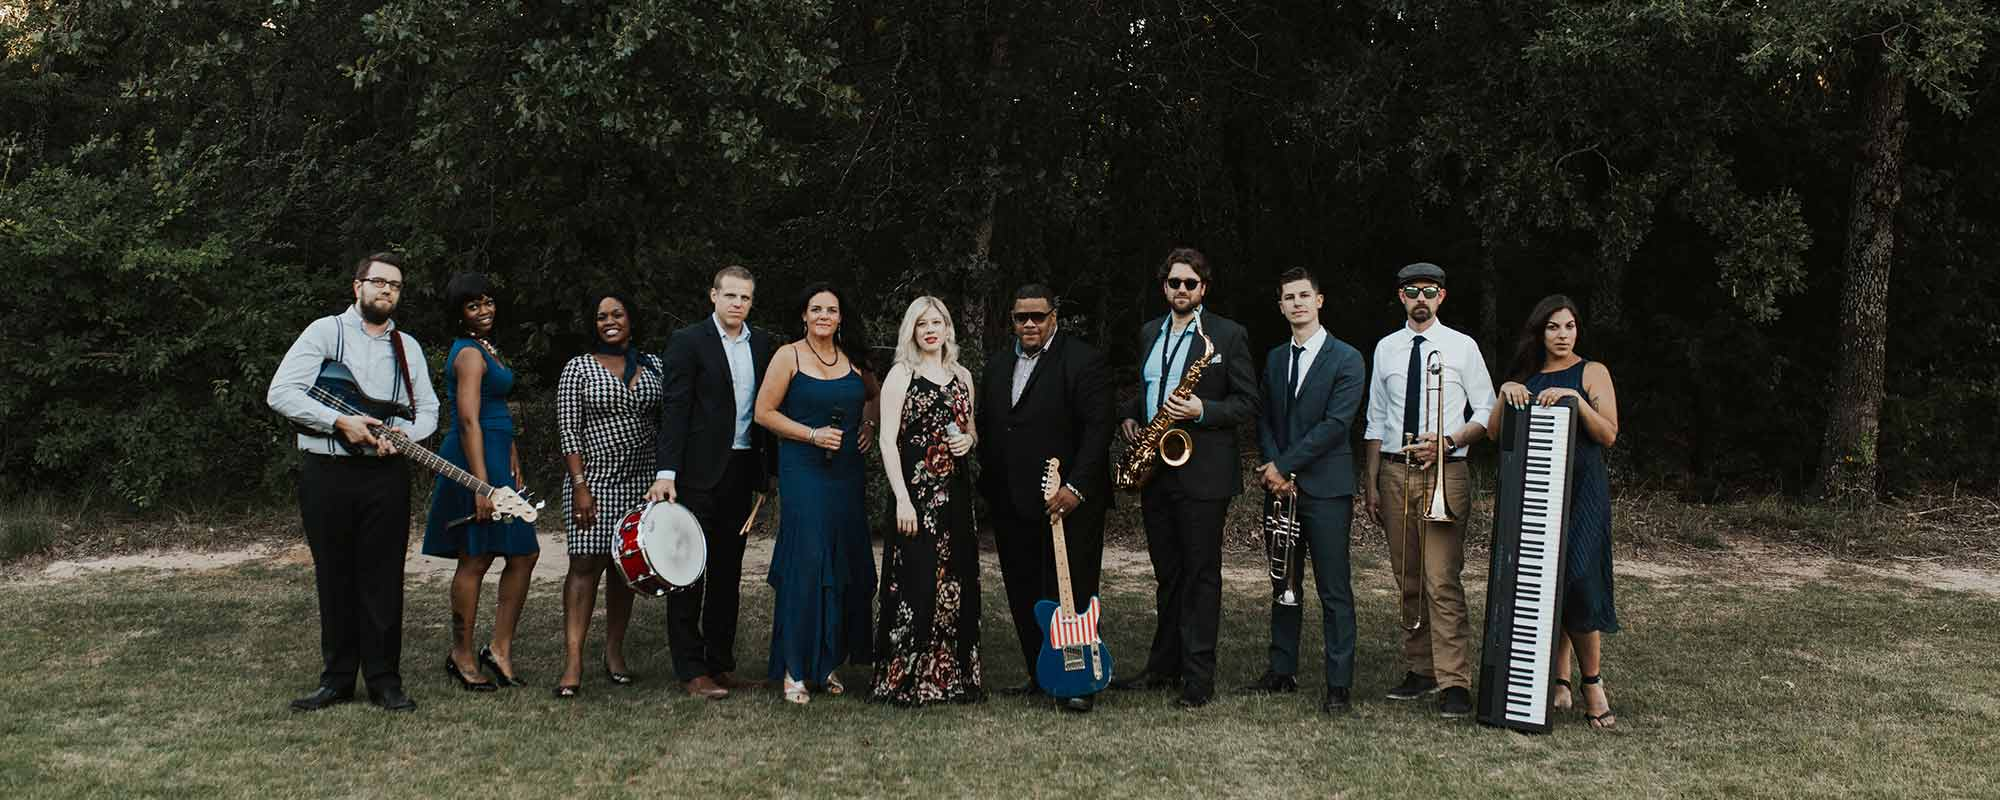 Royal Dukes Band - Wedding Band  - Contact Us